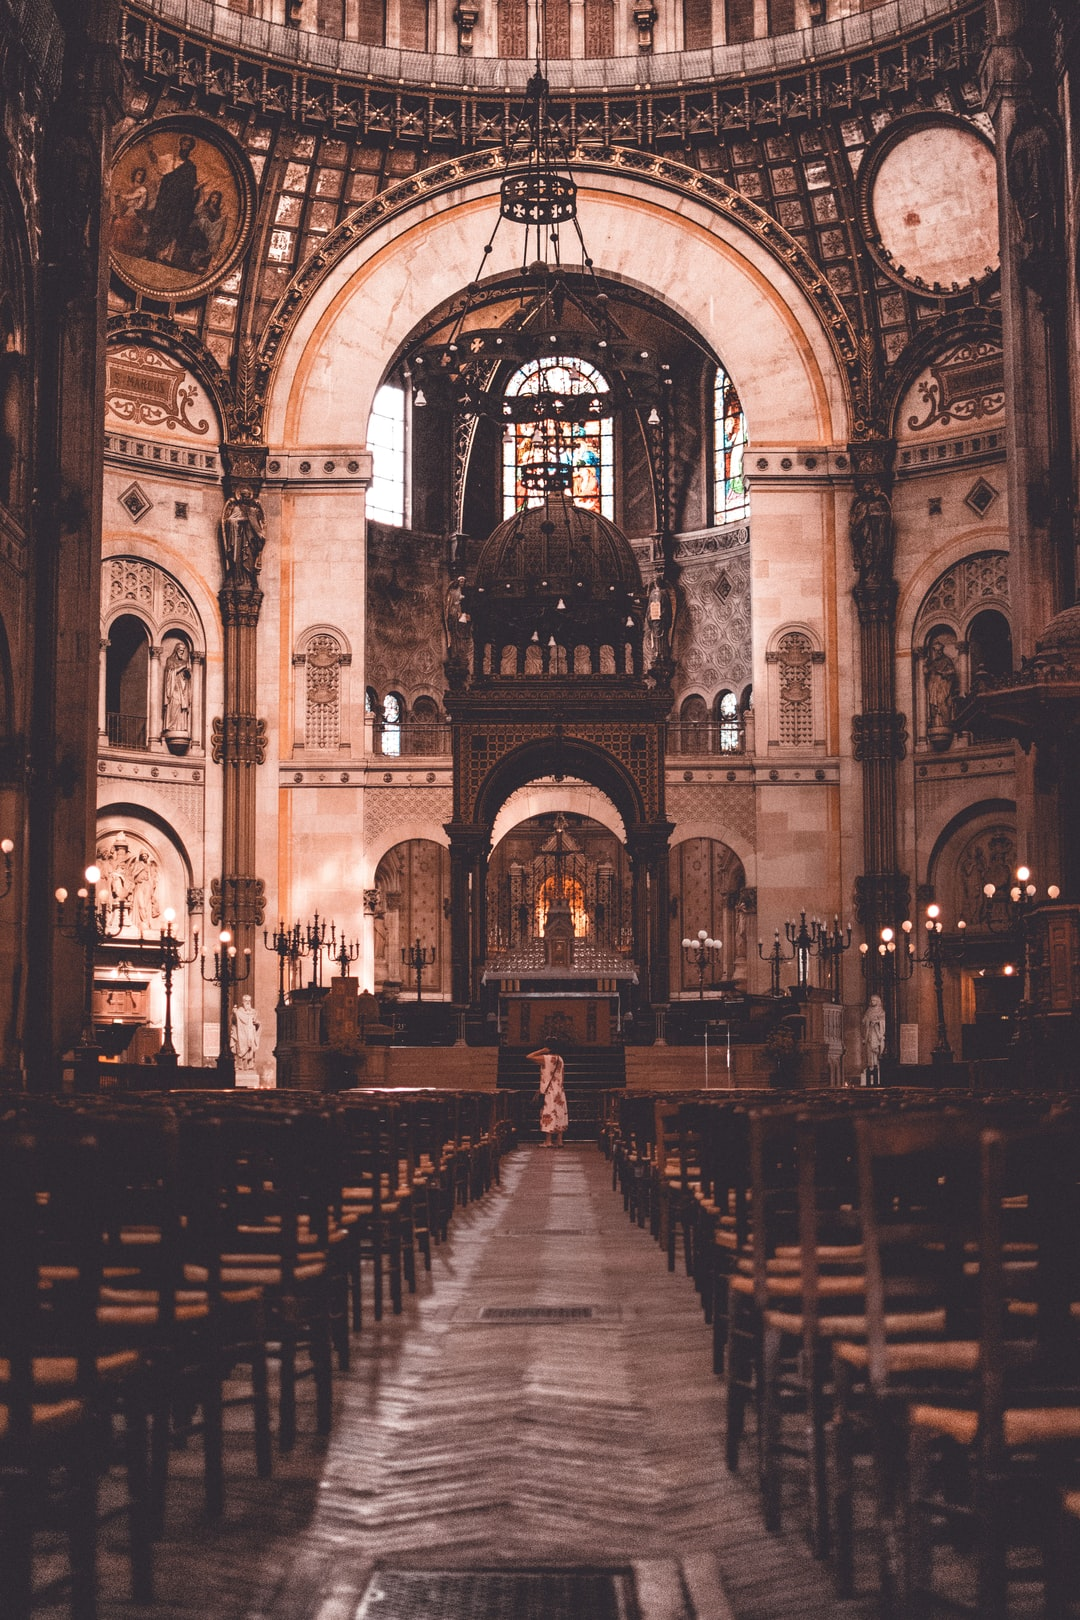 I was visiting a cathedral in Paris, and because the front was undergoing renovations, there were few people around. The only person at the other end of the cathedral was standing in the isle, looking up, a perfect photo opportunity.